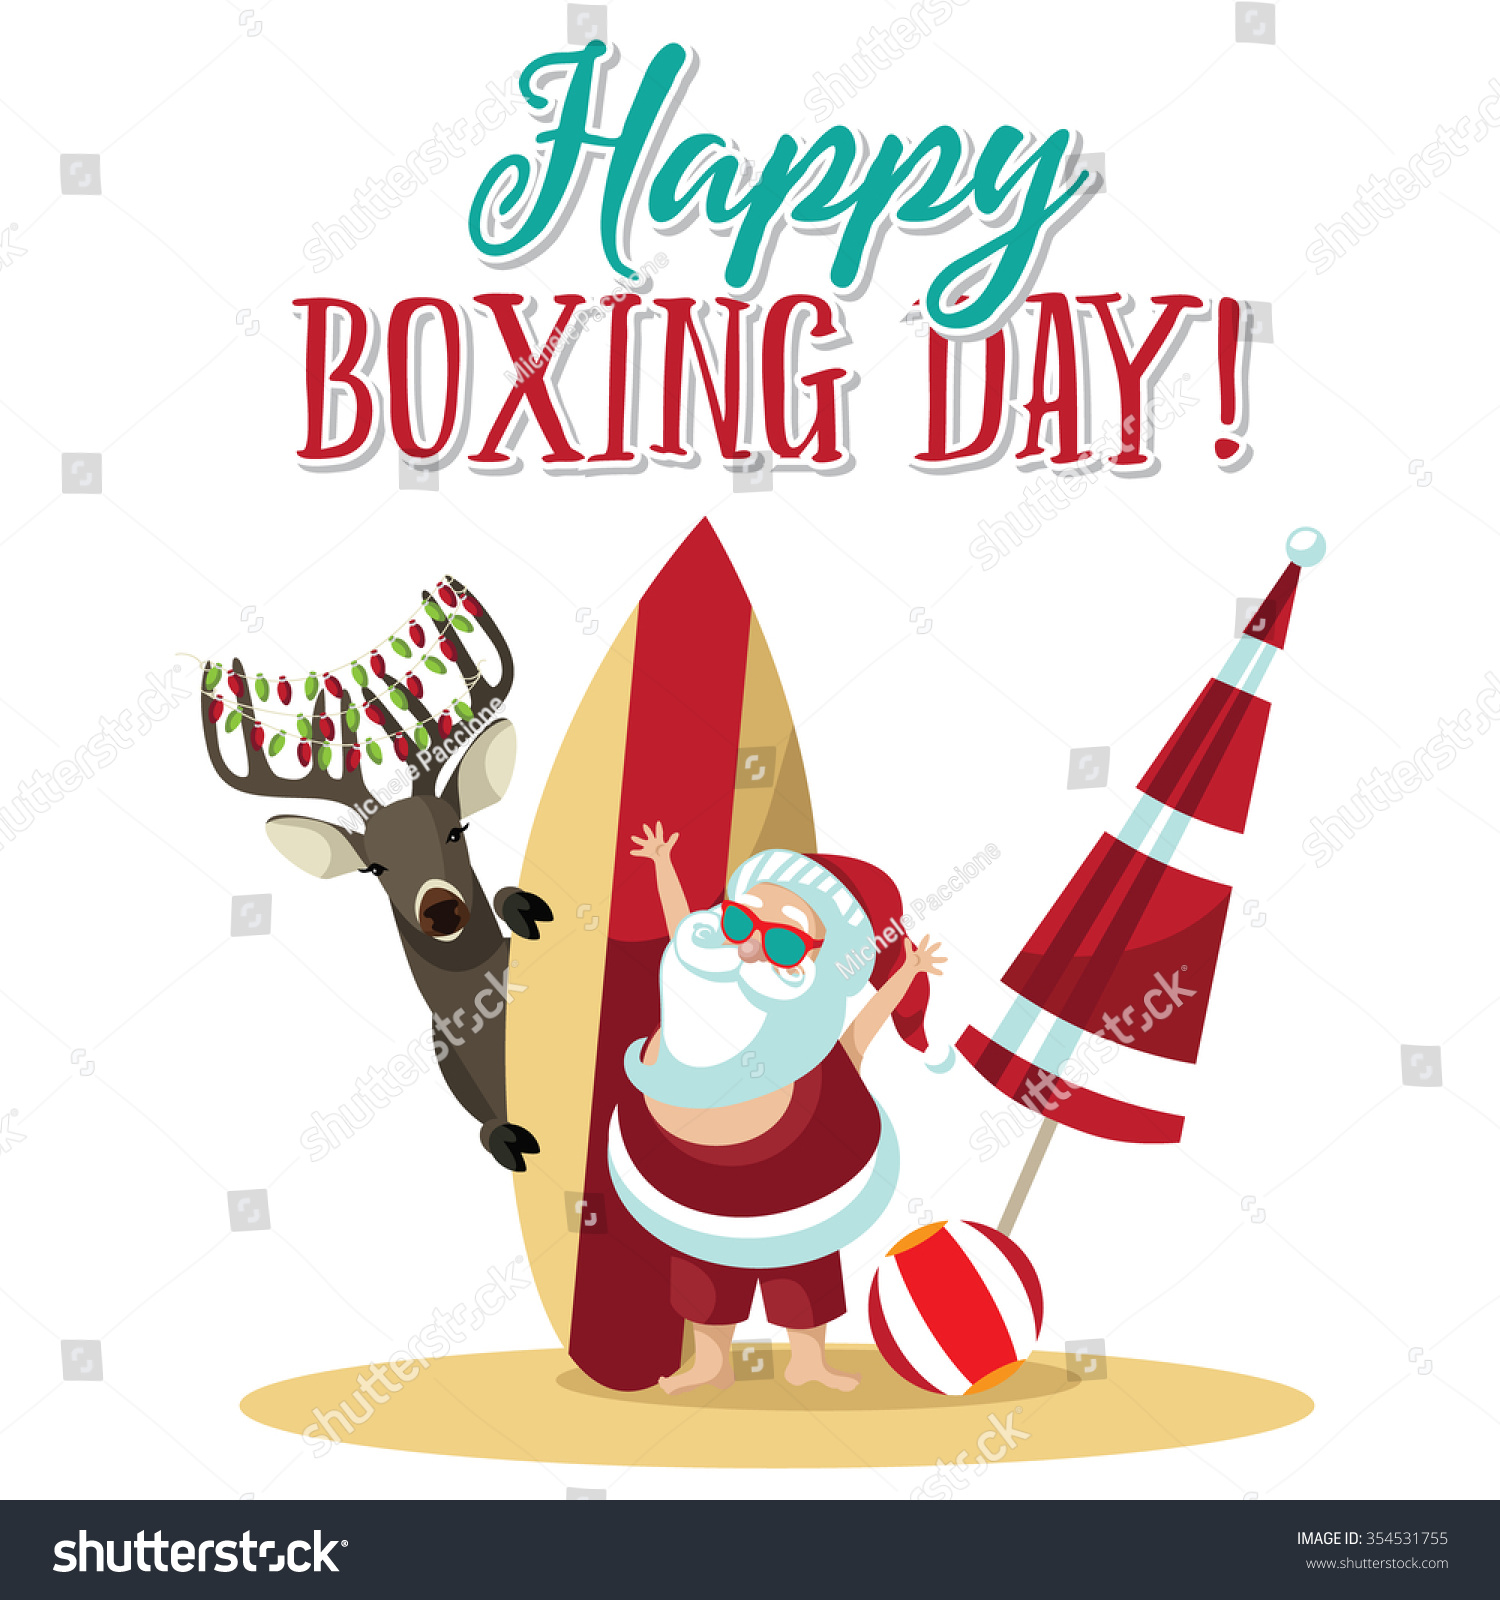 2019 year for girls- Cartoon day Boxing pictures